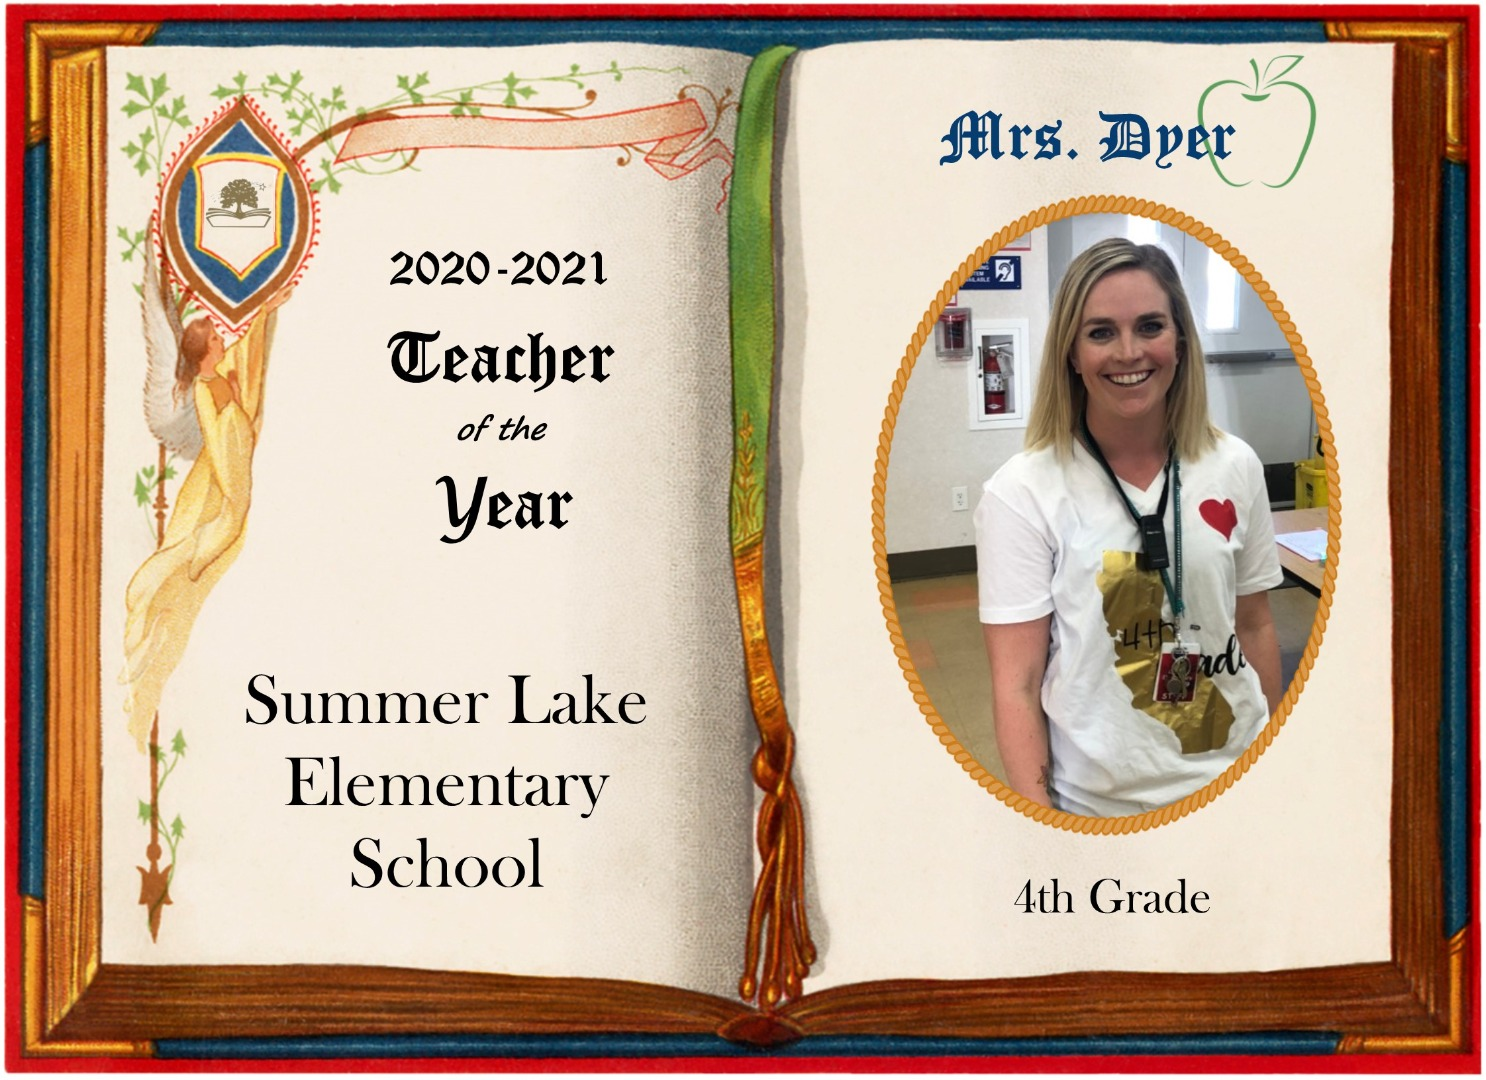 Mrs. Dyer, Summer Lake Teacher of the Year.